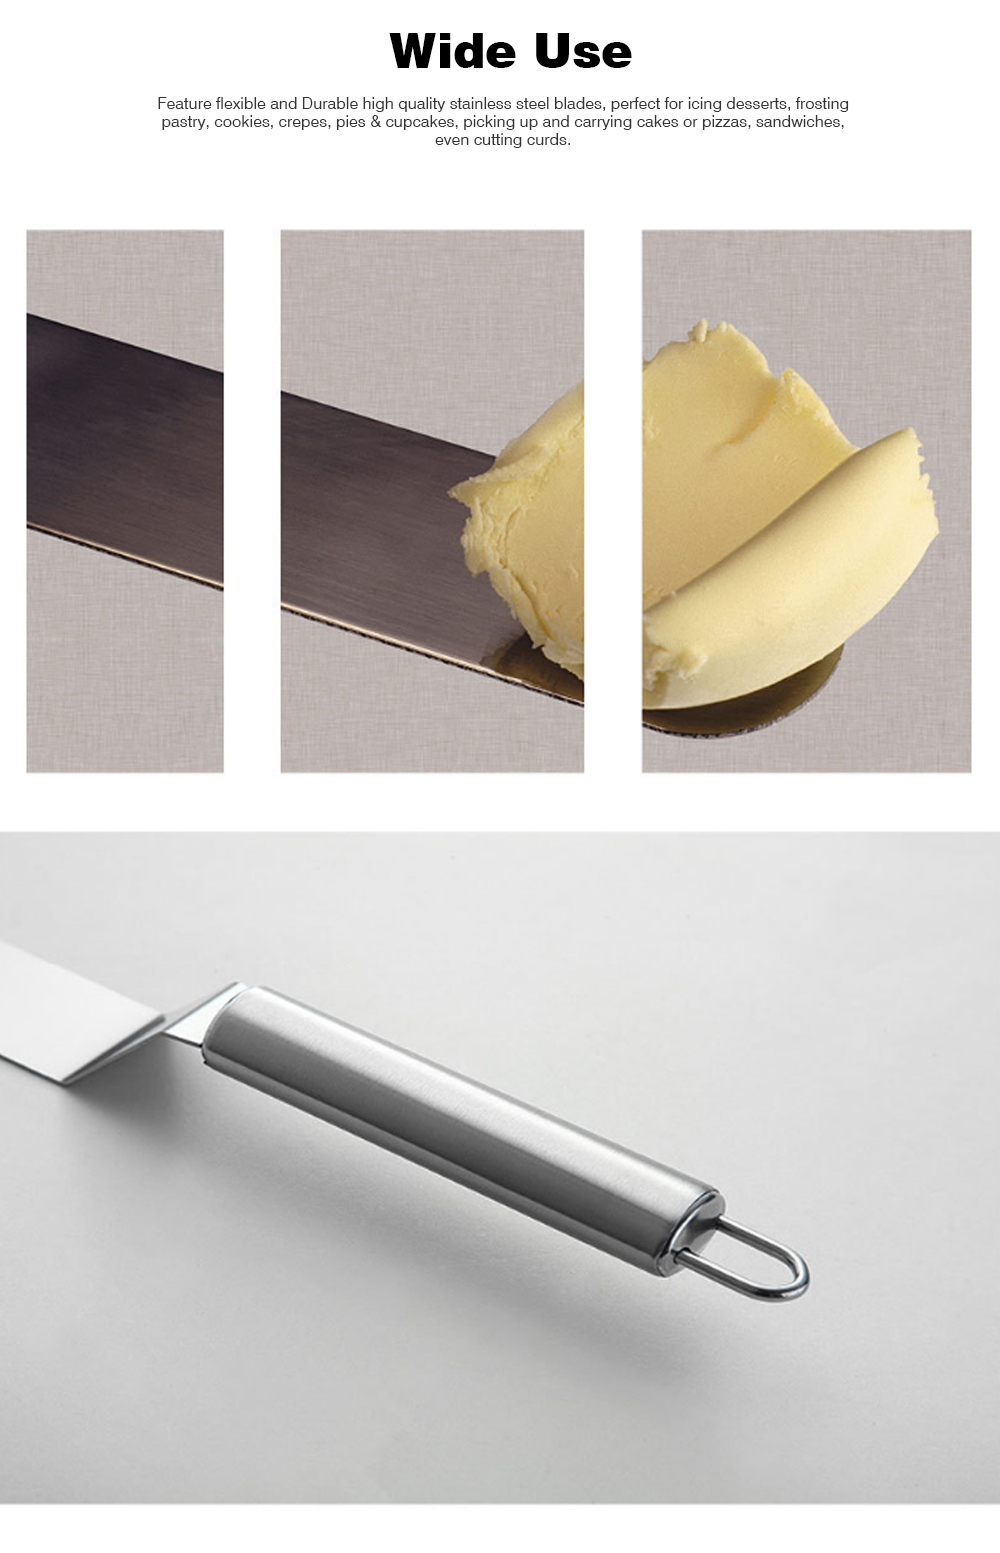 Kiss Knife Cake Tools, Stainless Steel Spatula Cake Cream Spatula Scraper, 8 Inch and 10 Inch 5